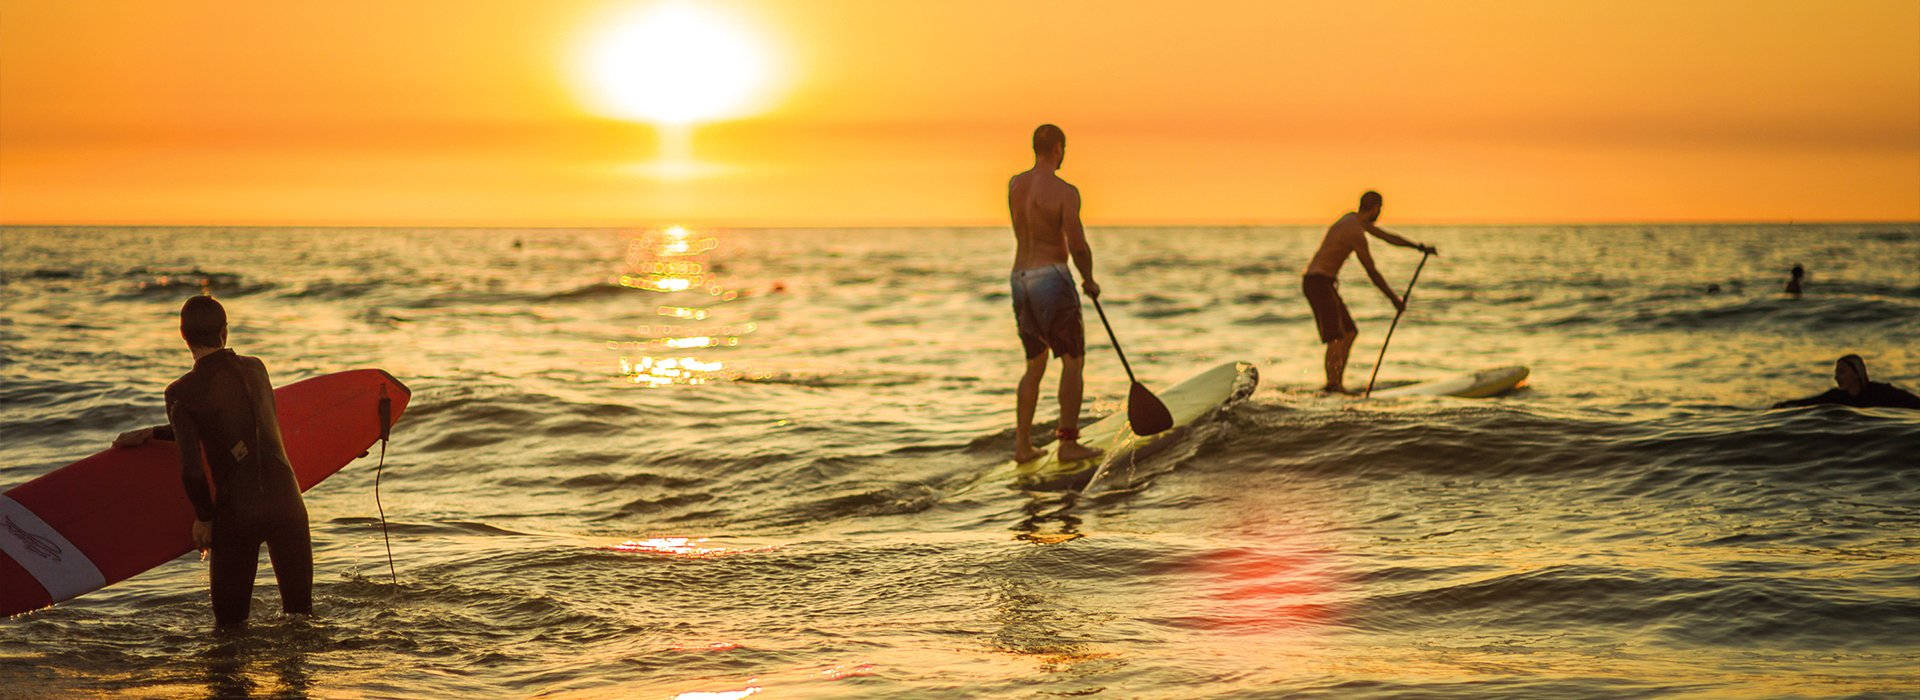 https://de.discoveryloyalty.com/Ultratravel-Collection/Grand-Hotel-Heiligendamm/Stand-Up-Paddleboarding-Course/?from=hotel